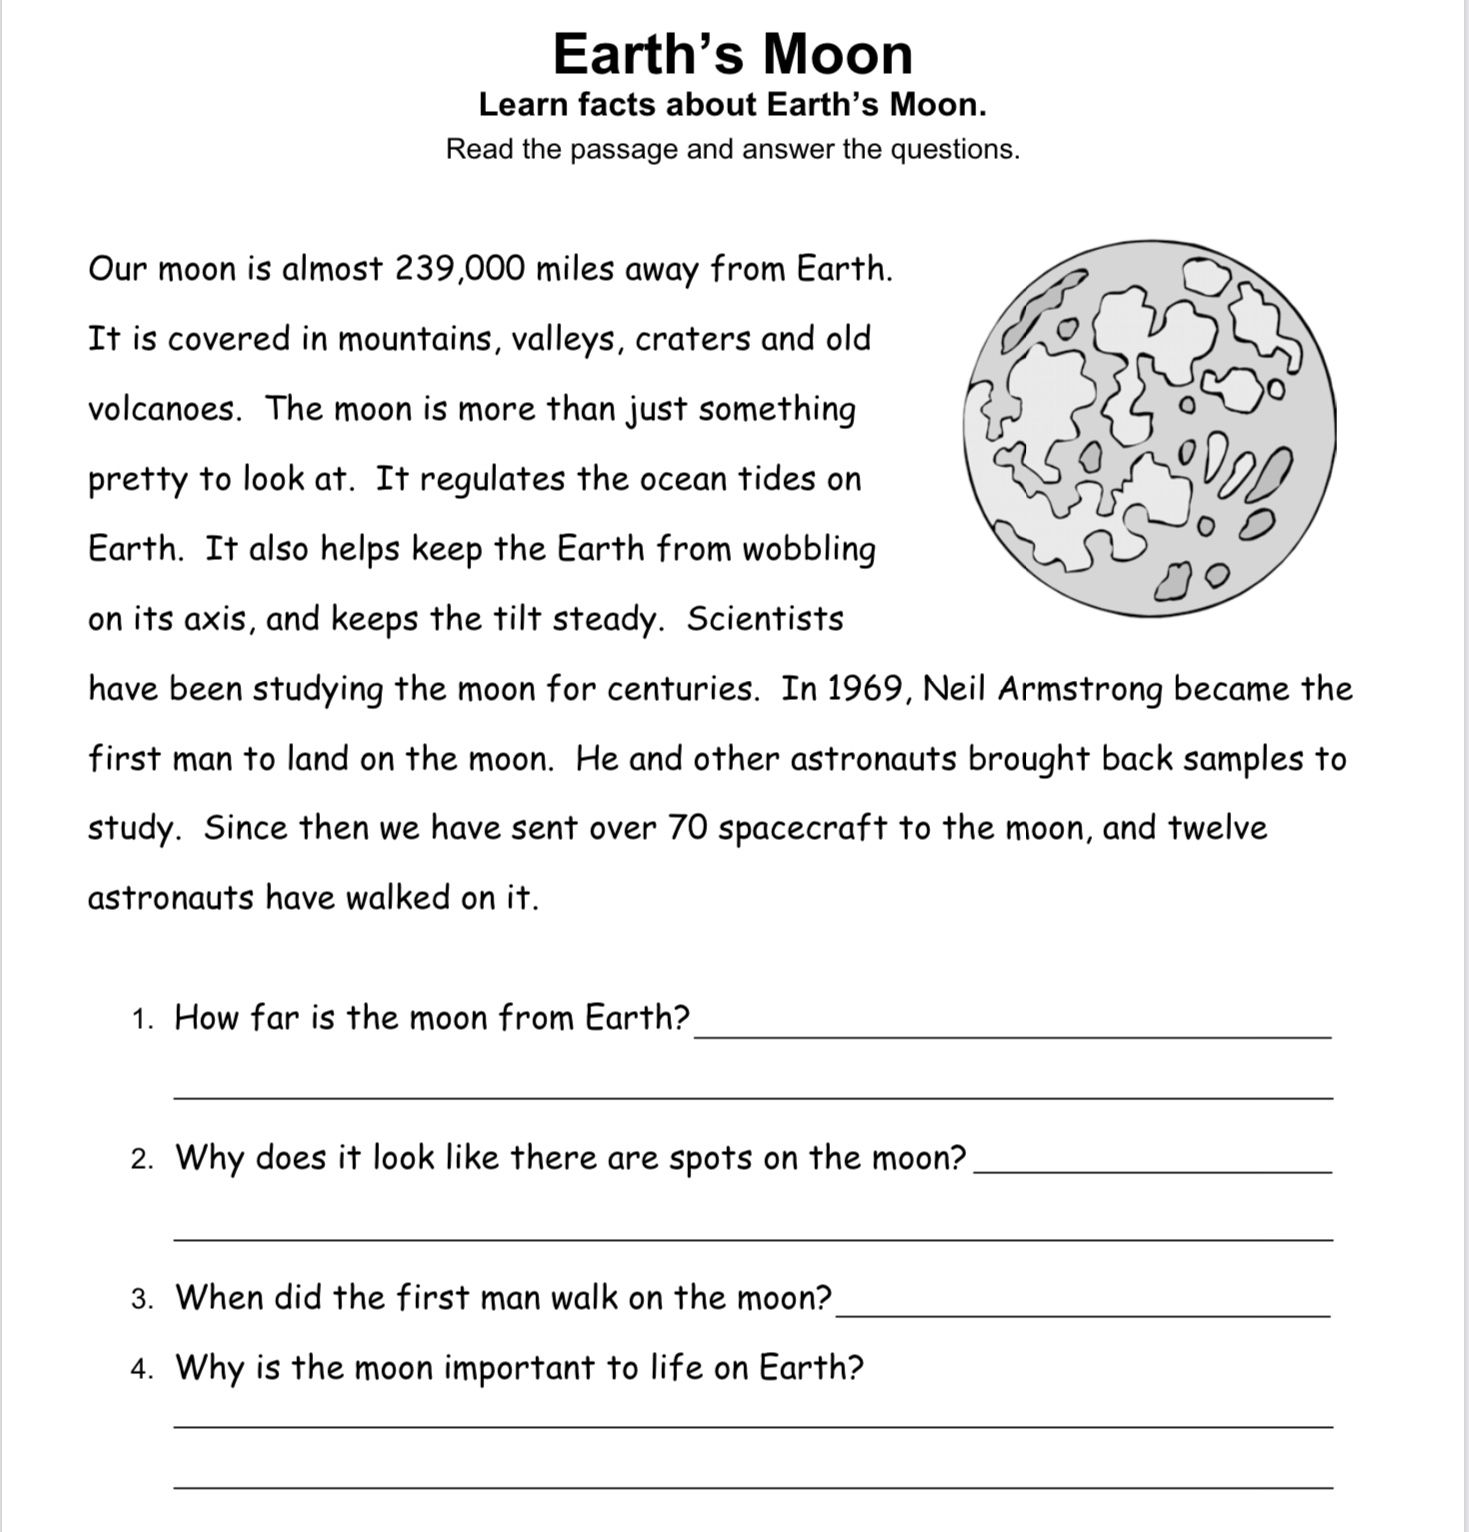 Pin By Lcr On Solar System Learn Facts Facts About Earth This Or That Questions [ 1532 x 1469 Pixel ]